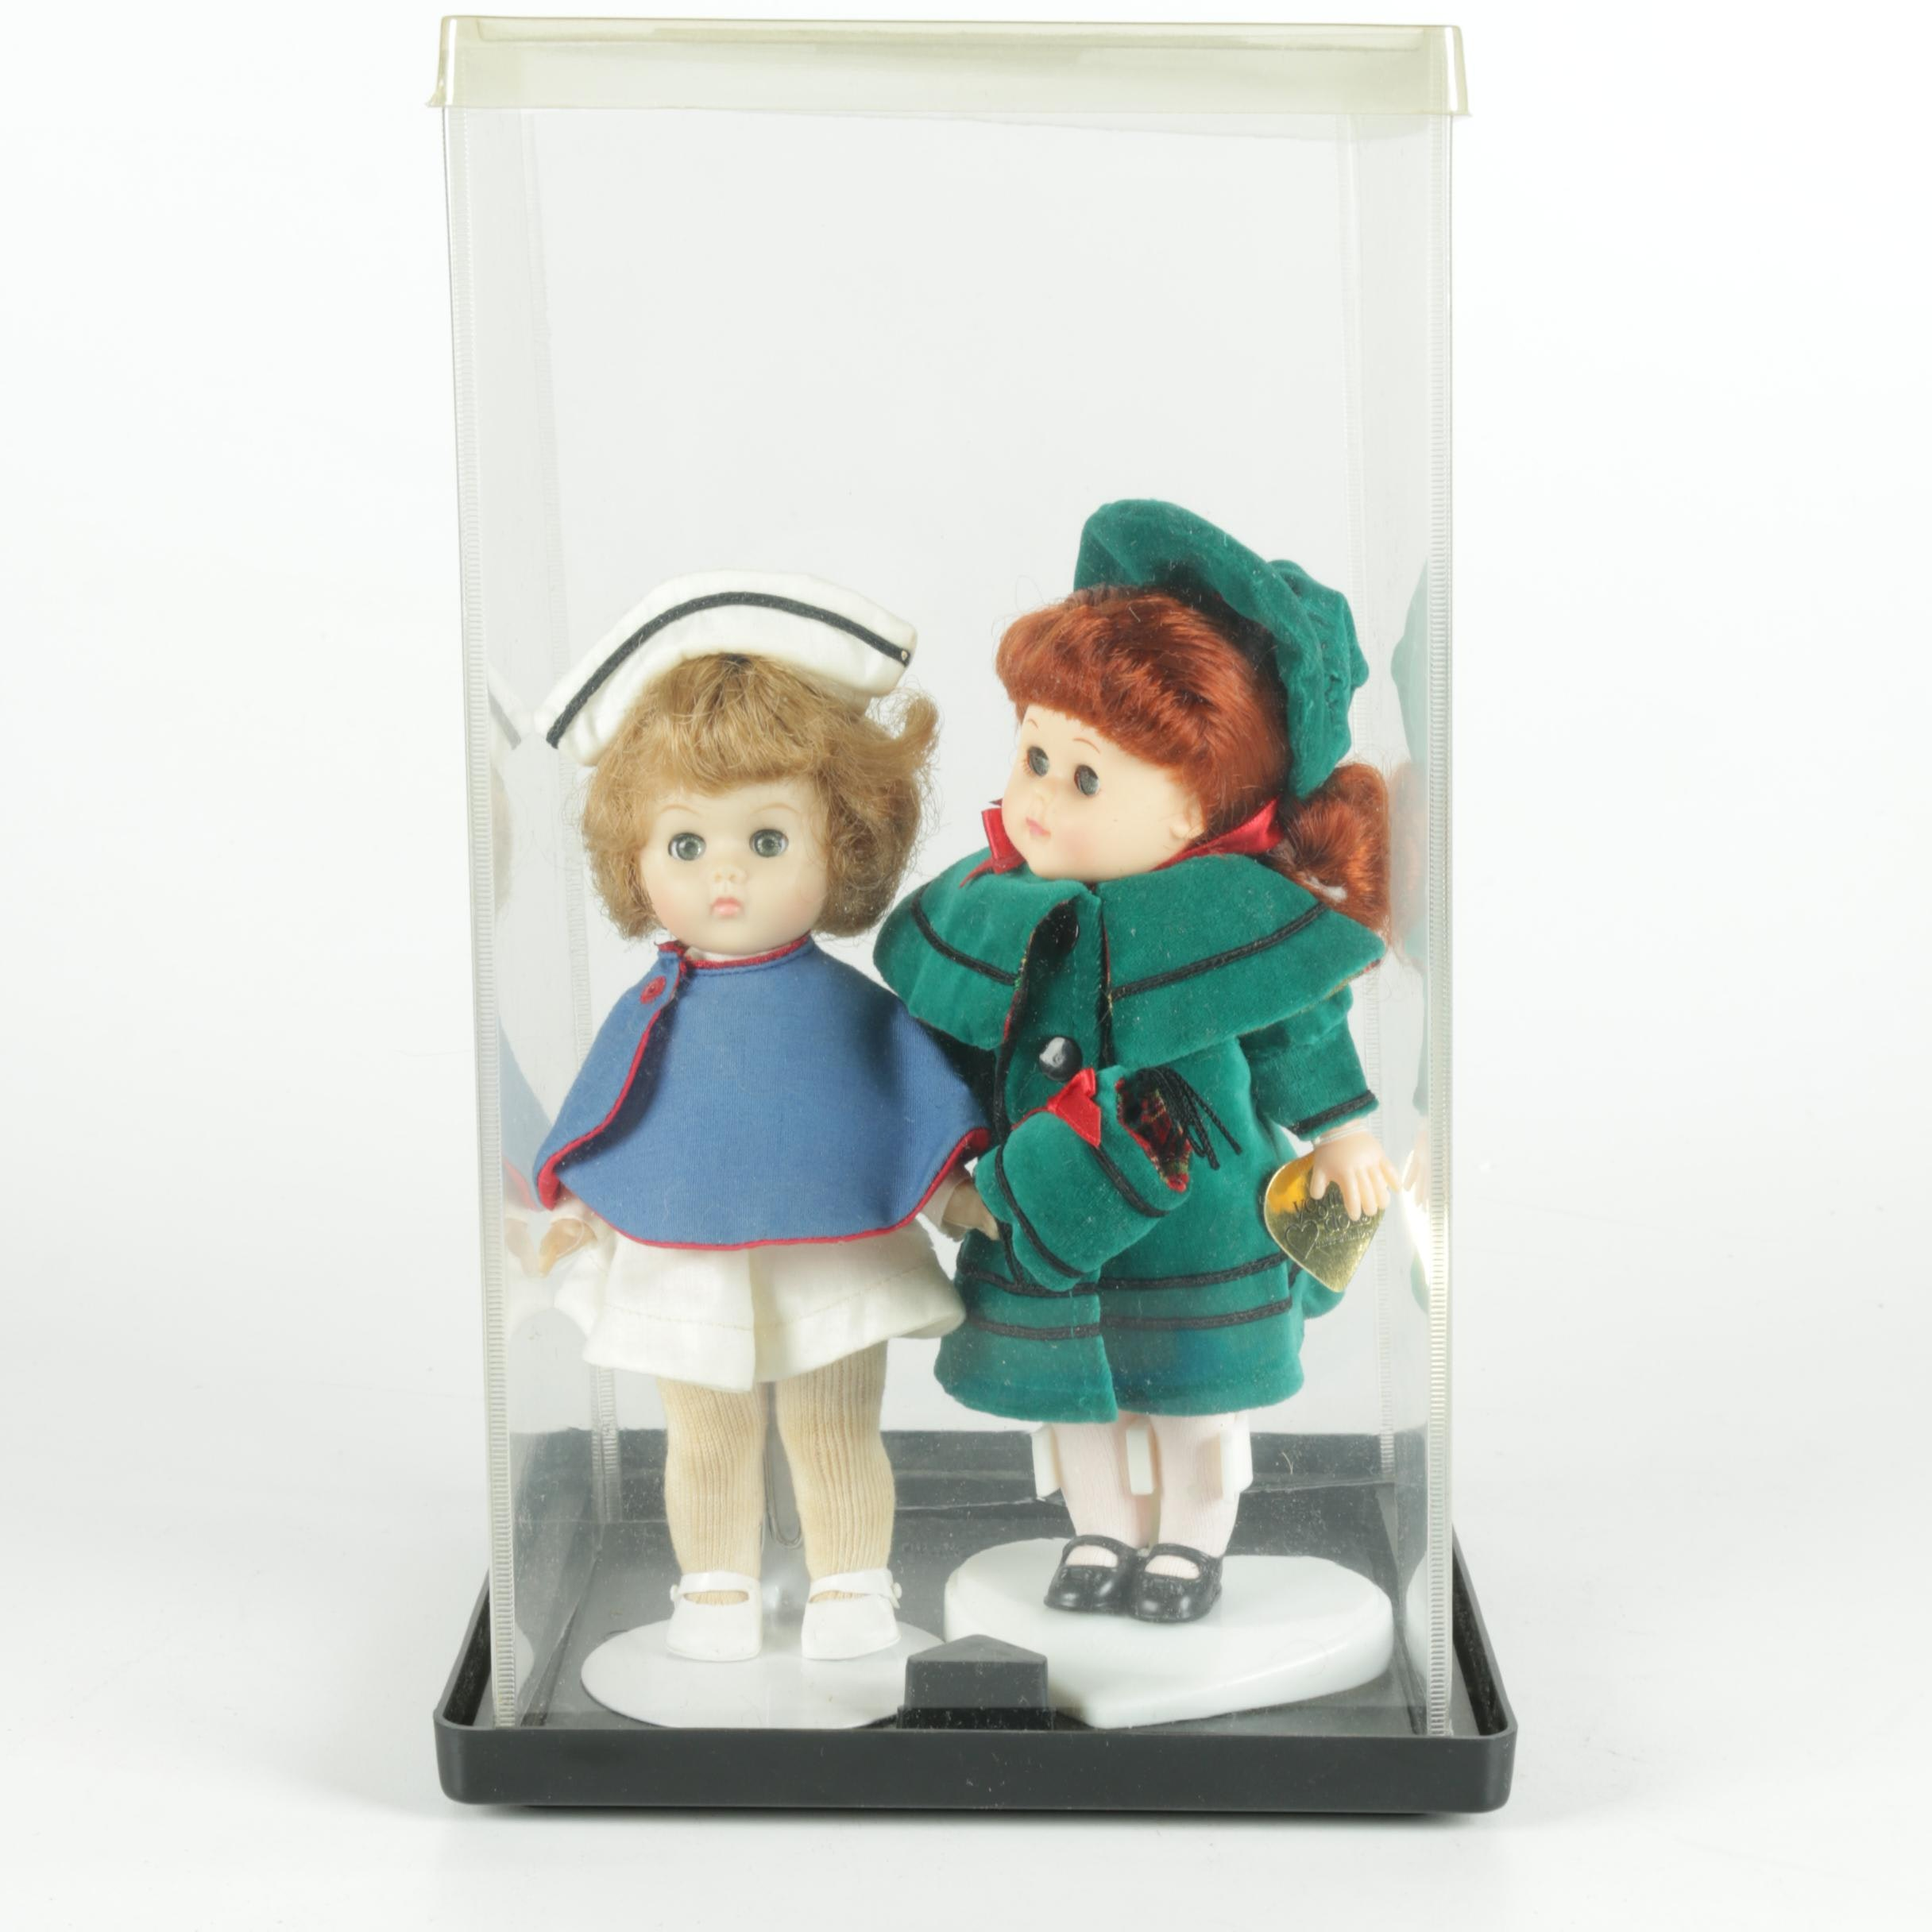 Vintage Collectible Dolls with Stands